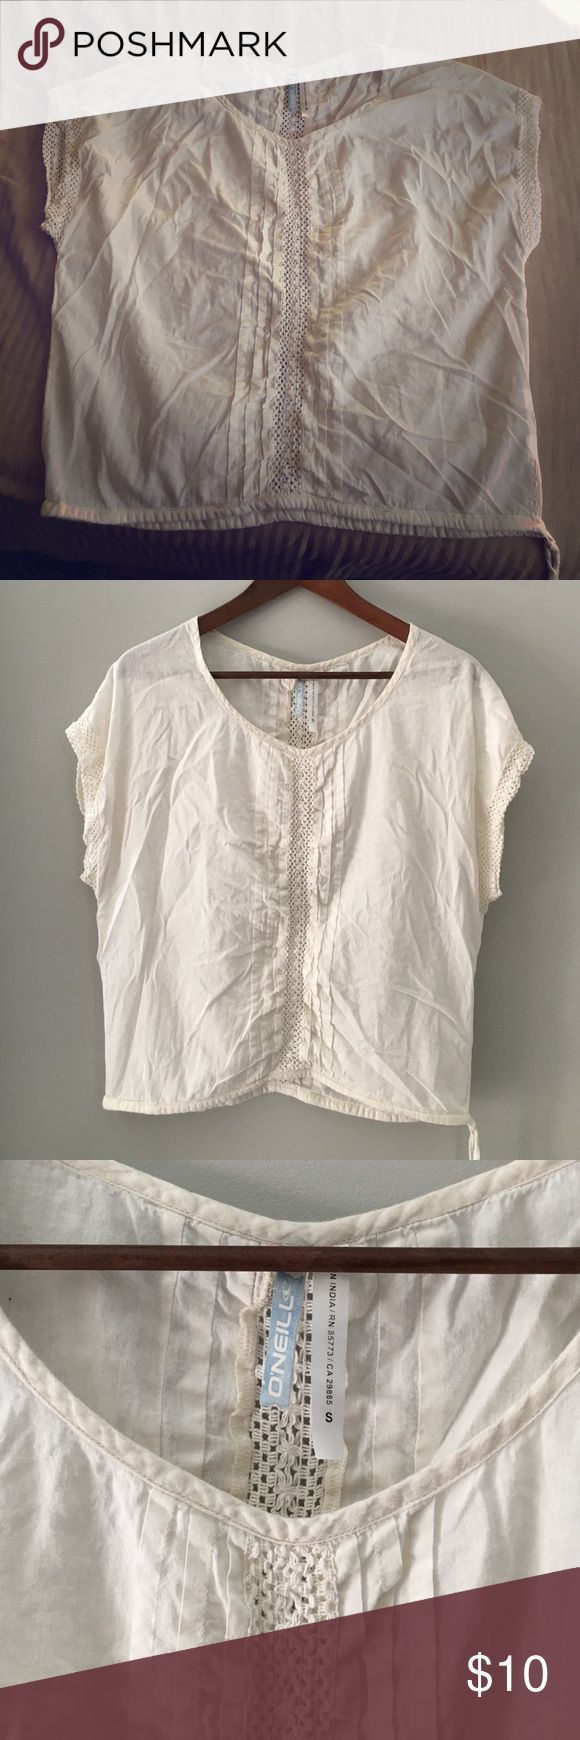 Cream short sleeve top Cream cotton top with decorative sleeves. Barely worn with no wear. Very comfortable!!!! Must have! O'Neill Tops Tunics